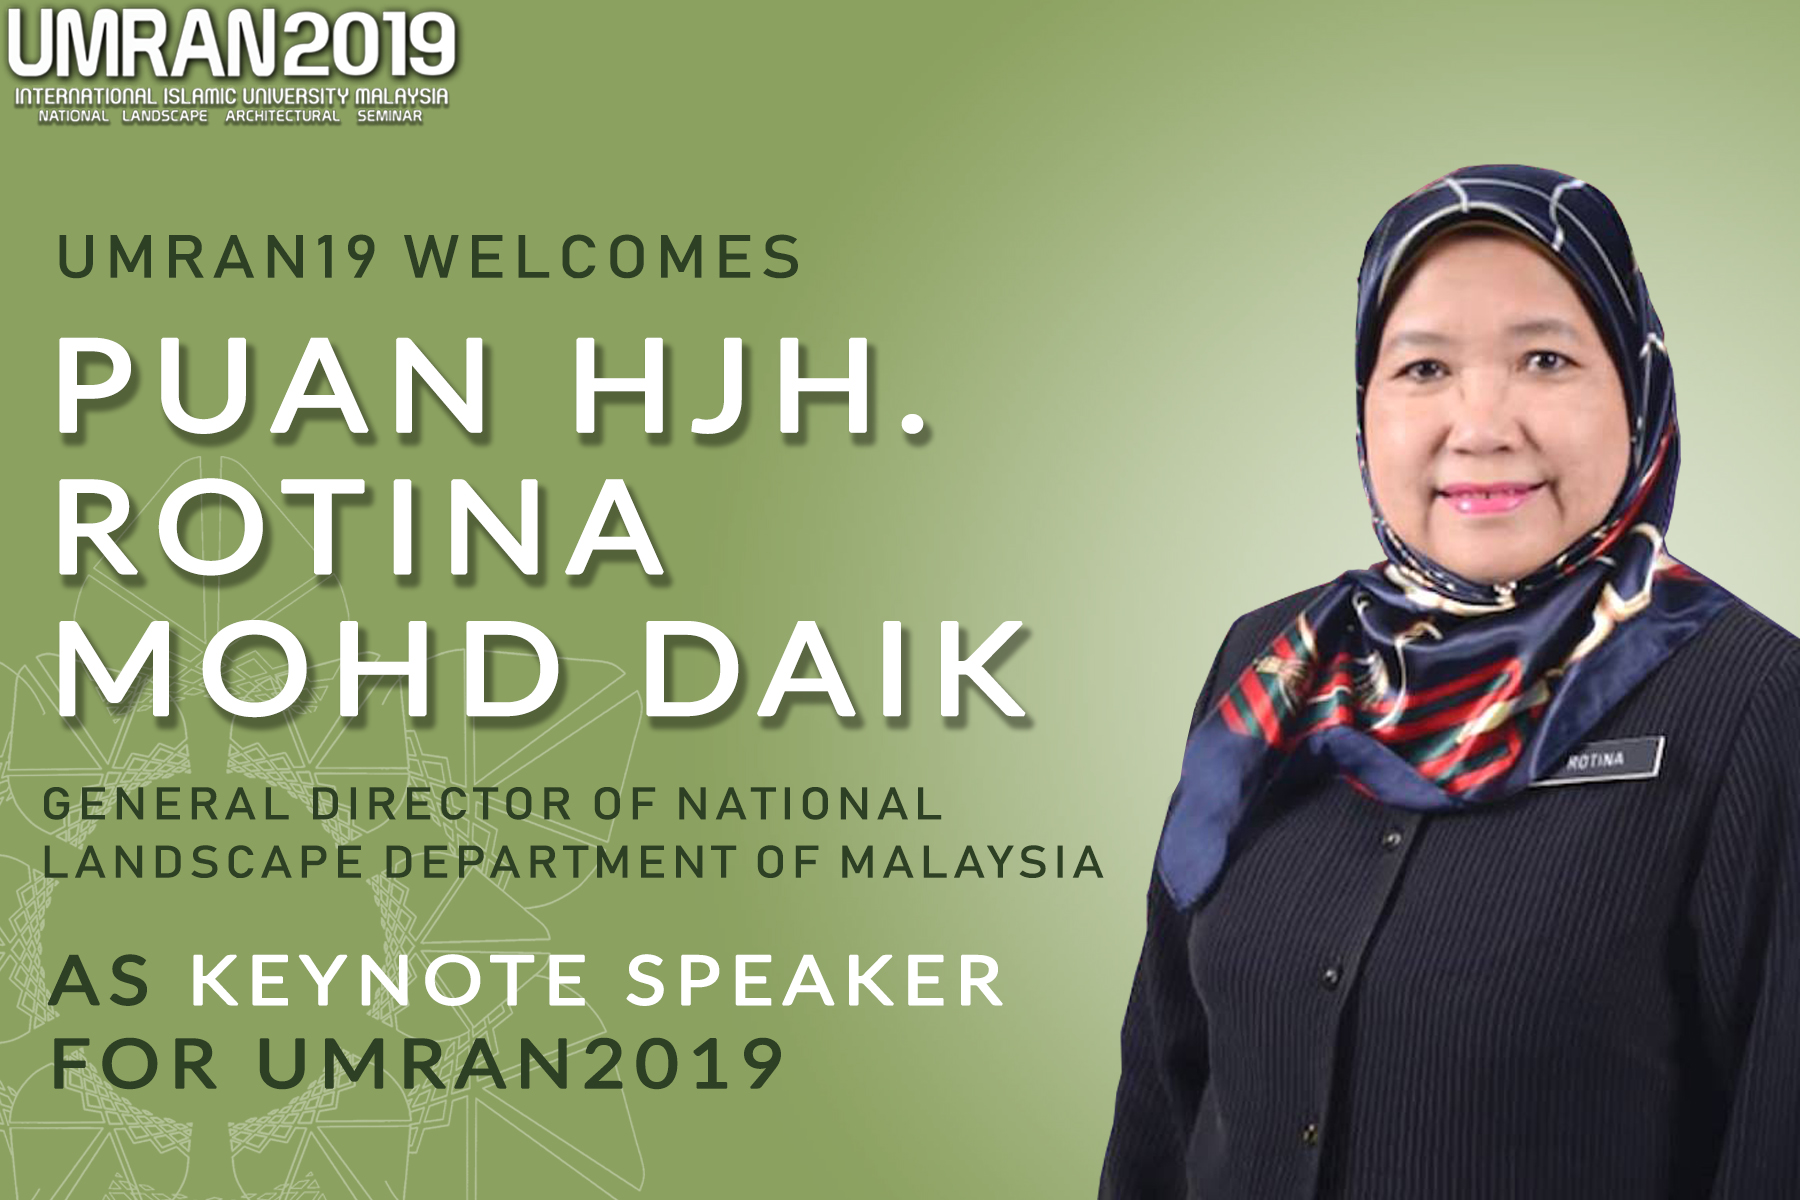 Keynote Speaker for UMRAN 2019